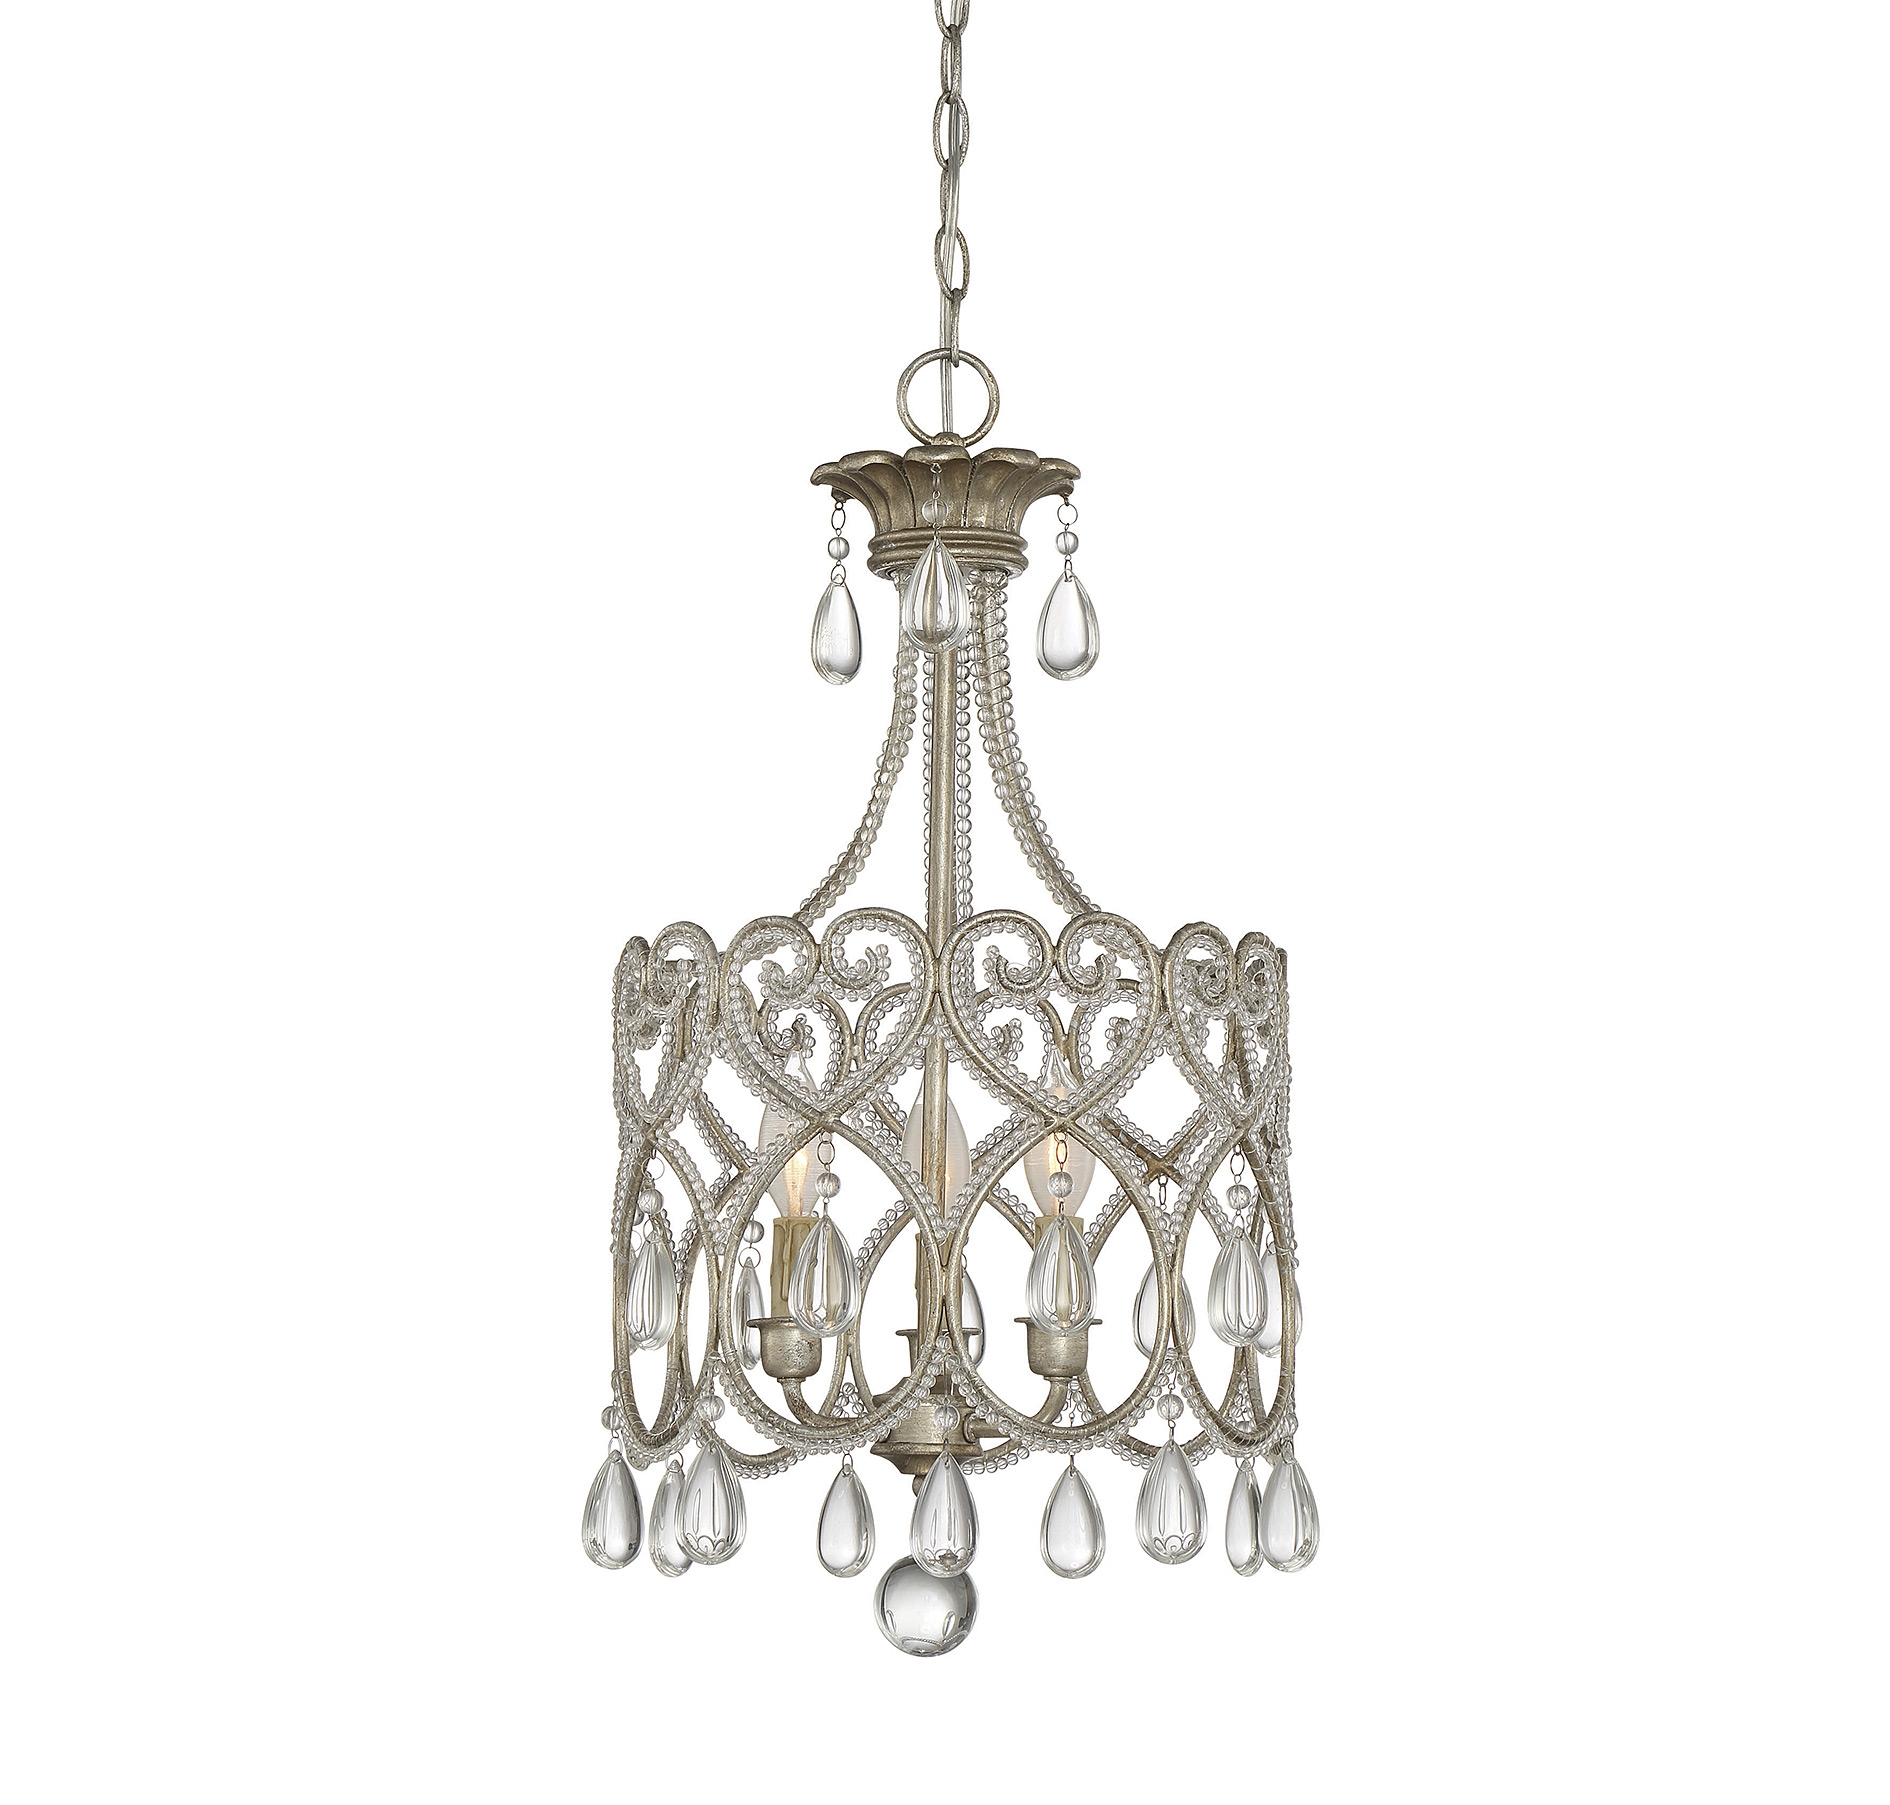 Hampton Bay Kristin 3 Light Antique White Hanging Mini Chandelier In Mini Chandelier Bathroom Lighting (View 8 of 25)